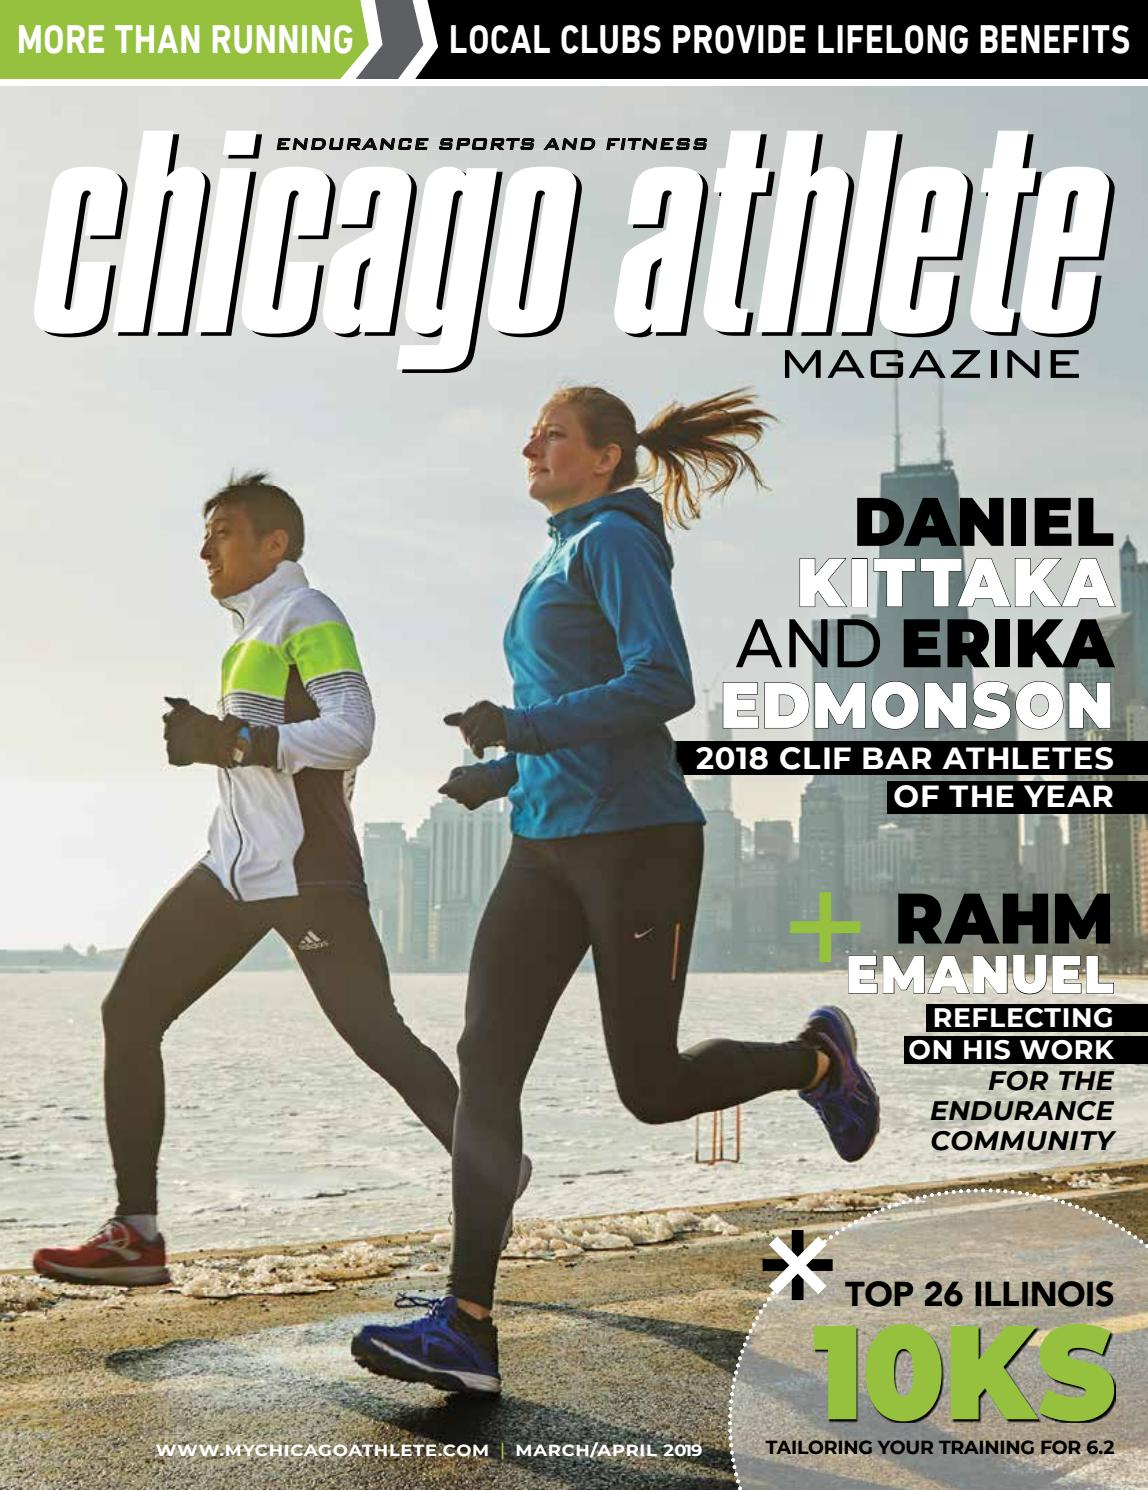 Vadim Racu Christmas In July 2020 5k Chicago Athlete Magazine March/April Issue by Kelli L   issuu